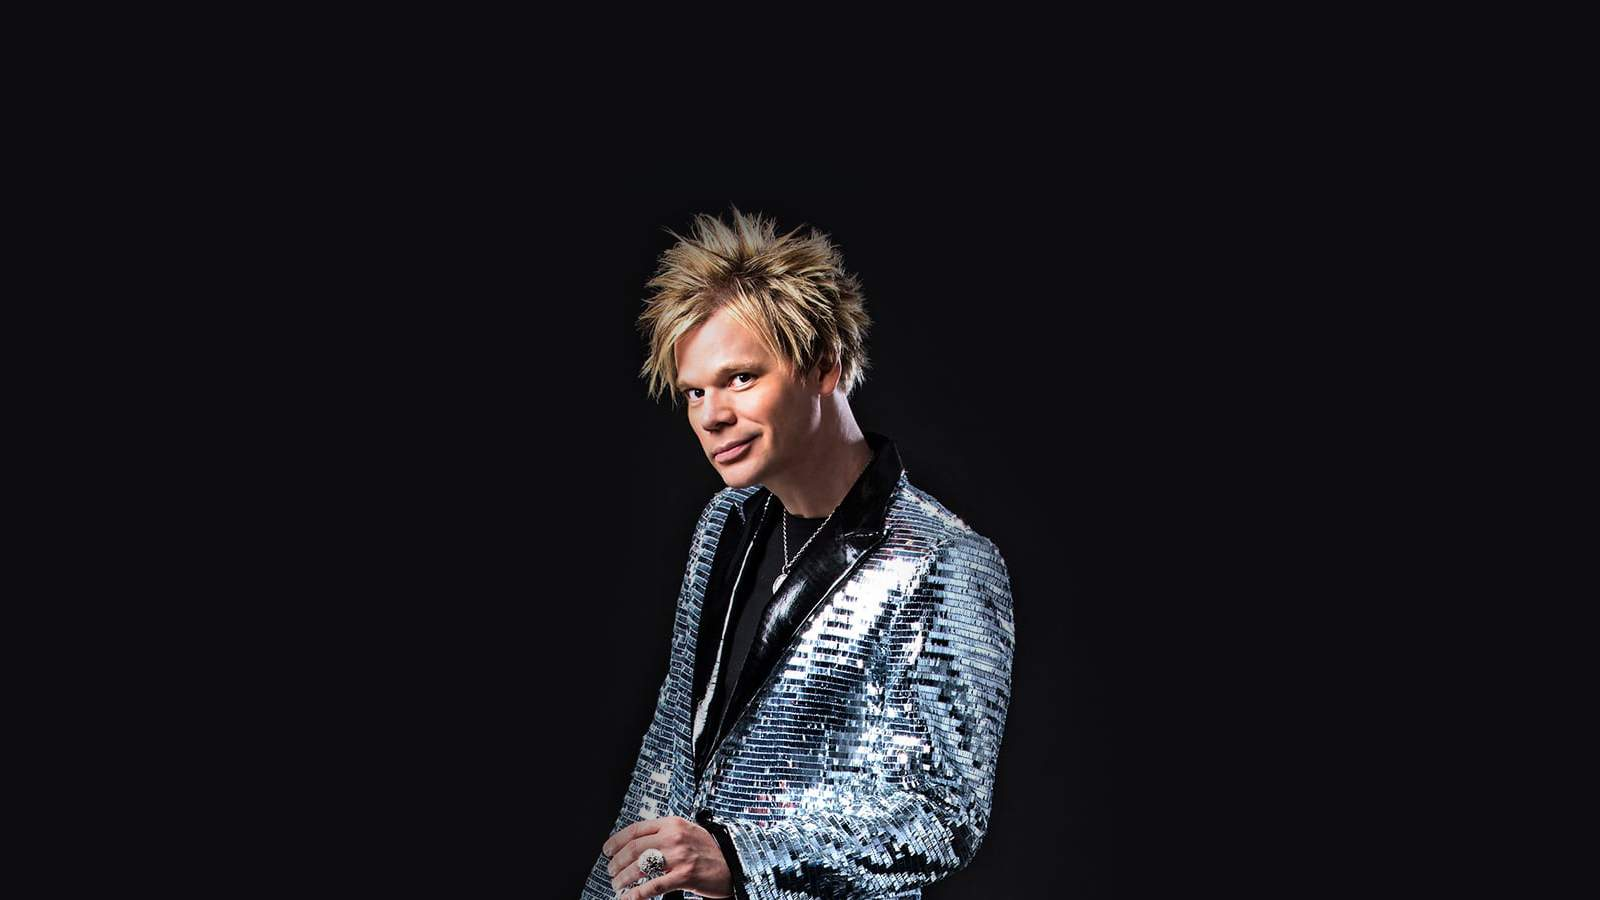 Brian Culbertson (Rescheduled from 4/11/2020)